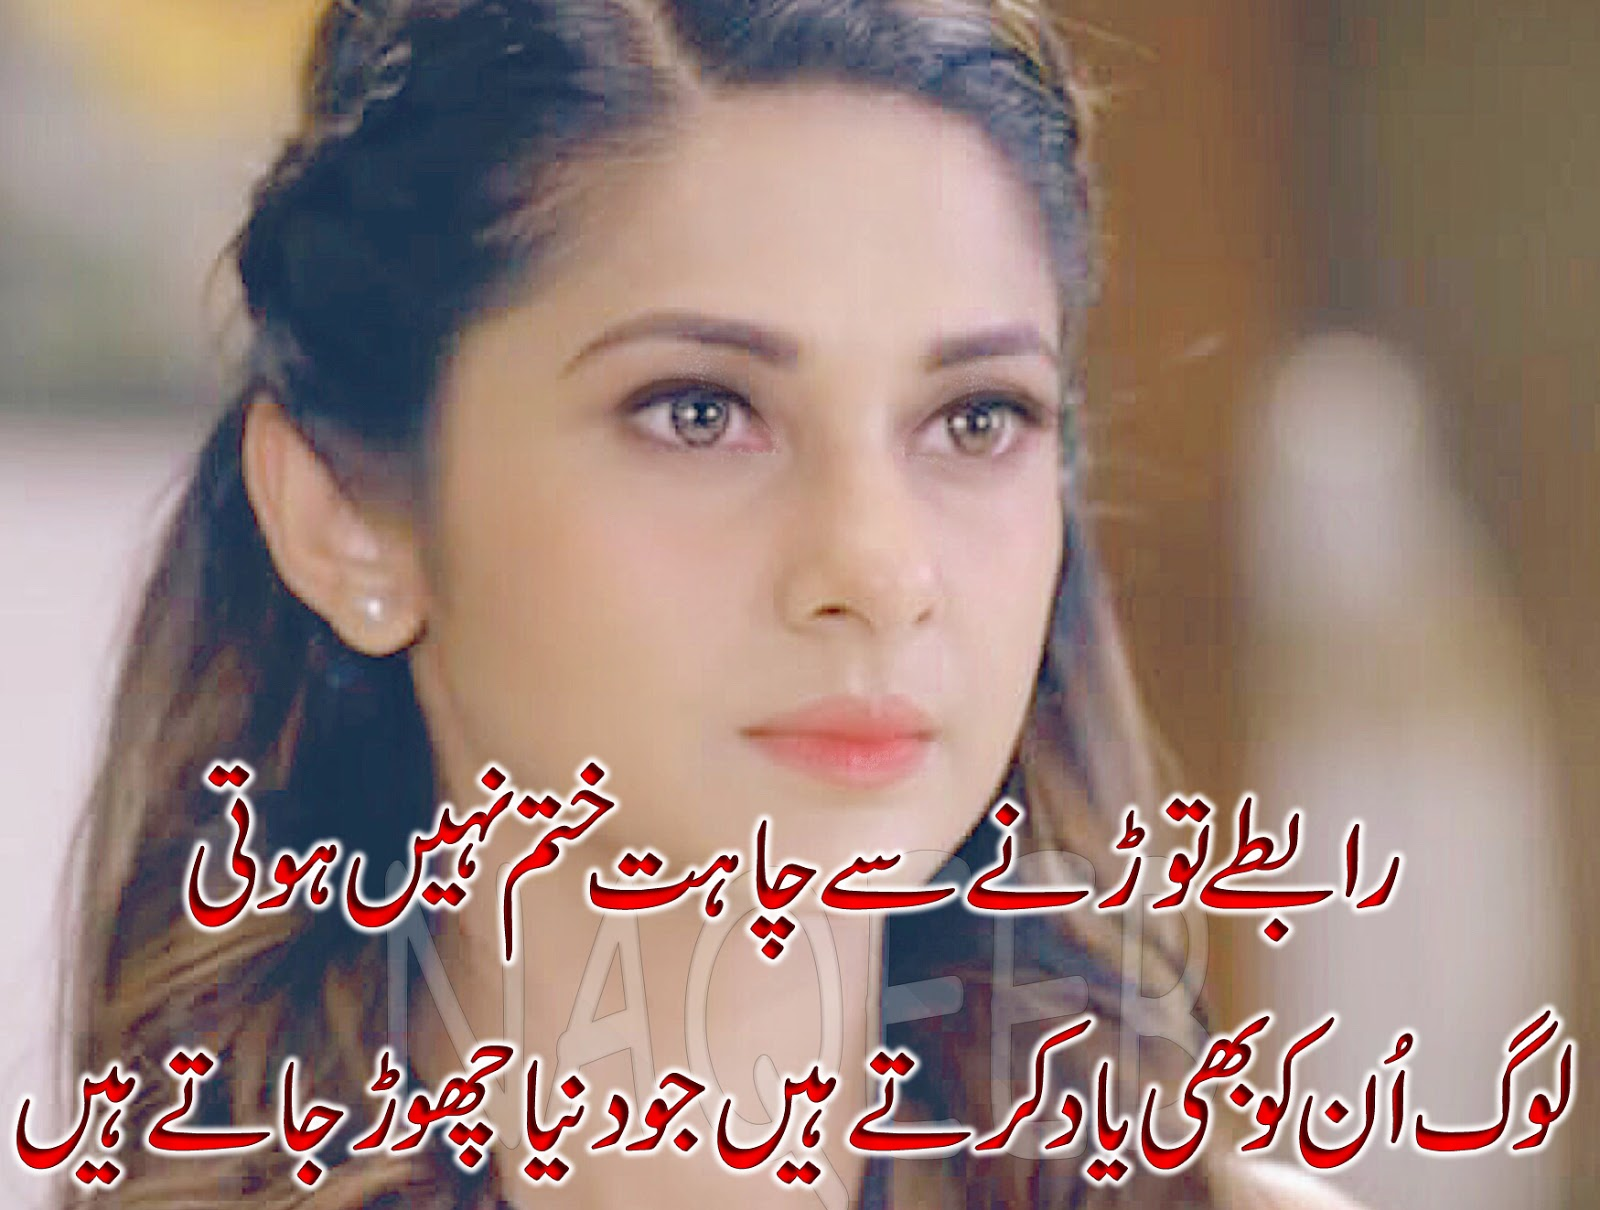 Sad Poetry Pics and Shayari in Urdu 2017